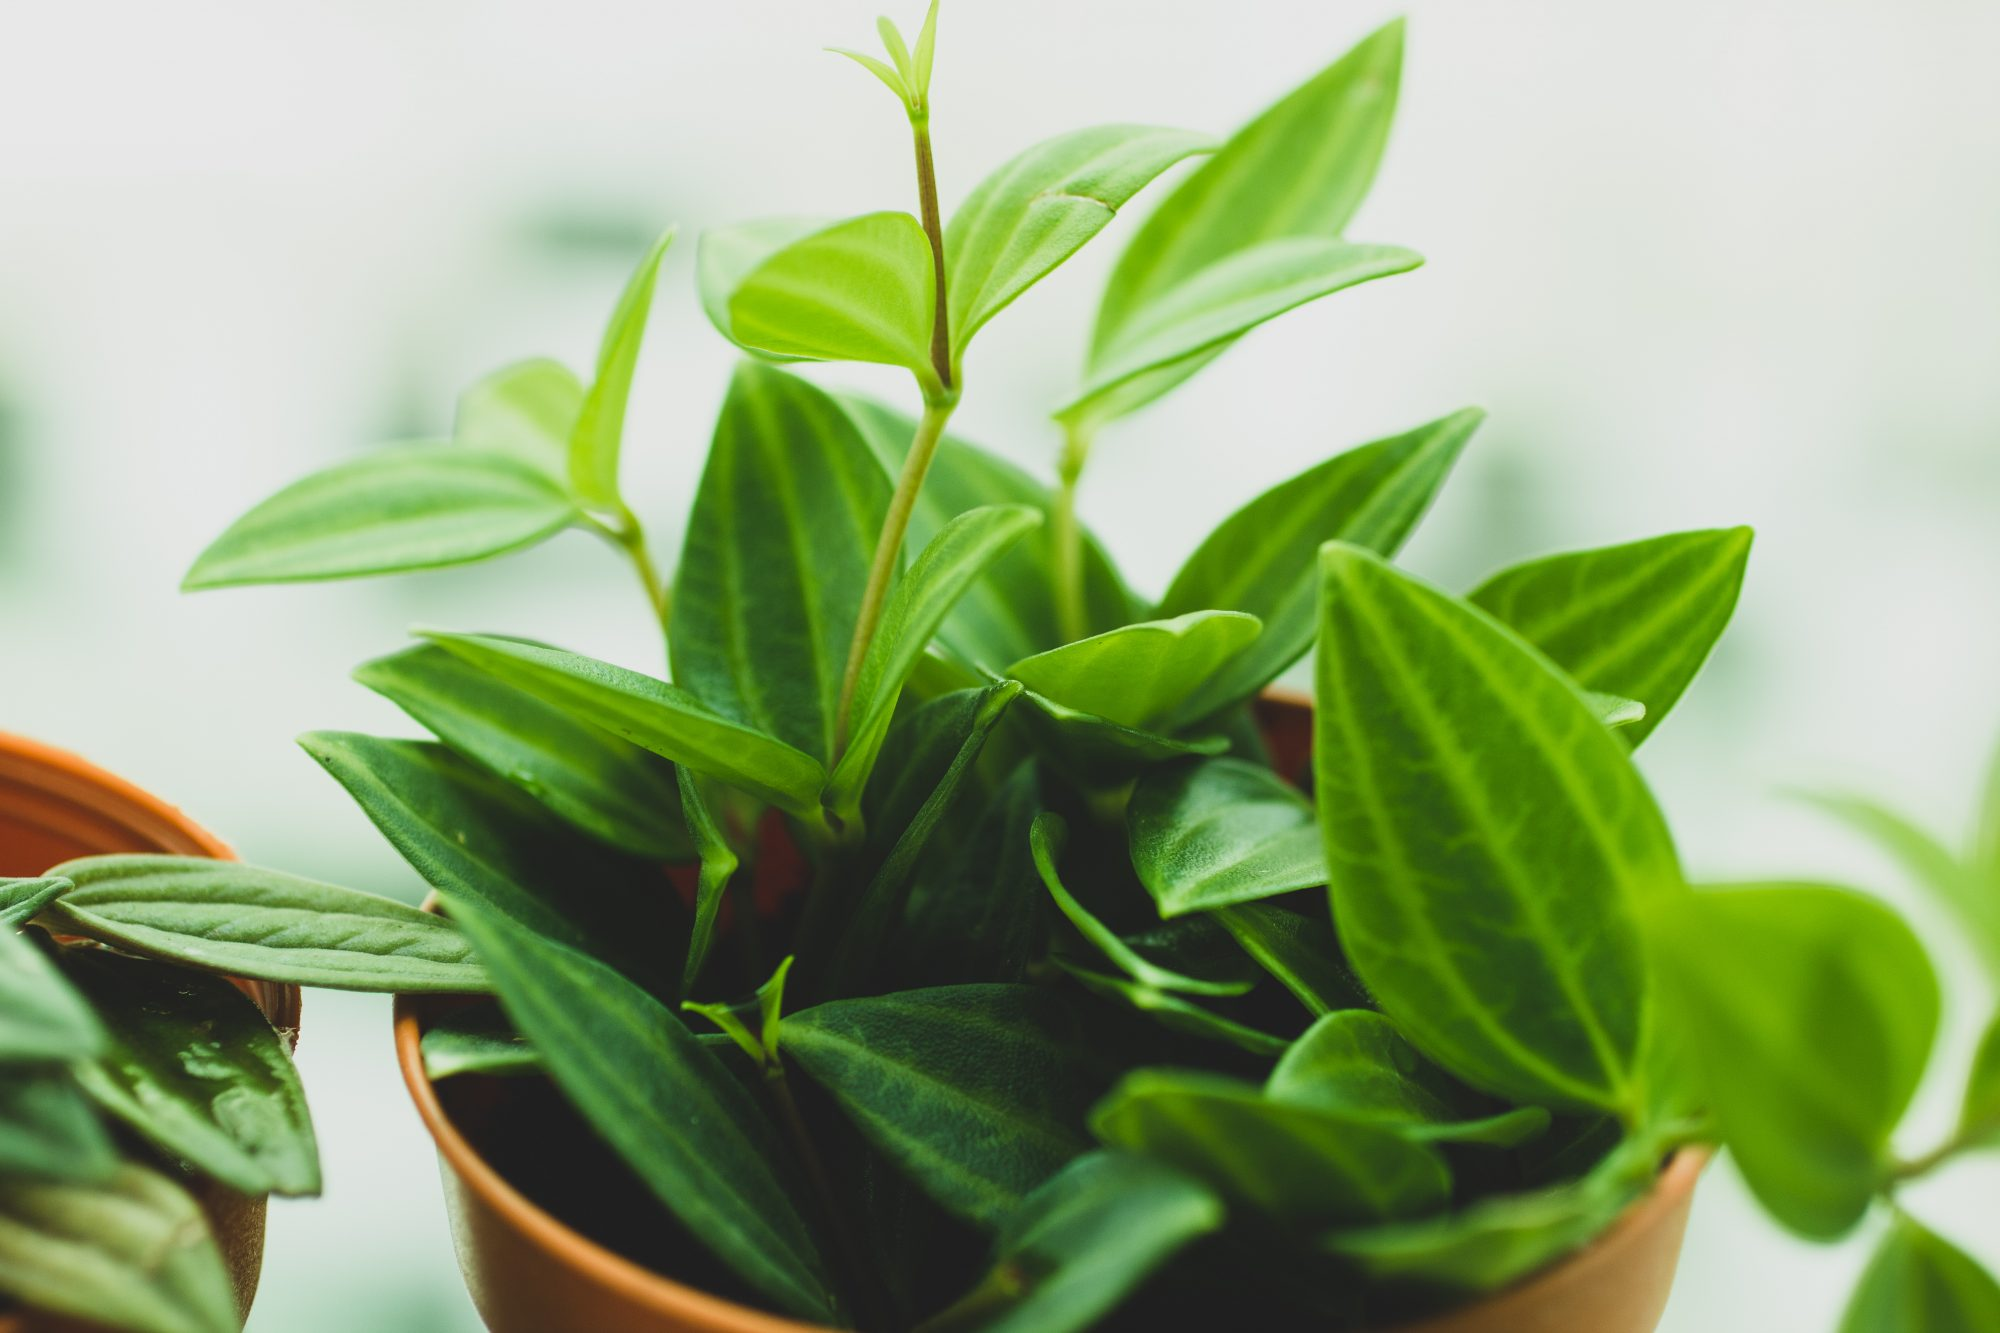 Indoor Gardening - House Plants Guide - Southern Living ... on plant identification and names, food and names, vegetables and names, greenhouse and names, animals and names, ornamental grasses and names, herbs and names, beans and names, flowers and names, roses and names, cactus and names, pets and names, types of orchids and names, weeds and names, tools and names, wildflowers and names, seeds and names, daylilies and names, clothing and names, furniture and names,